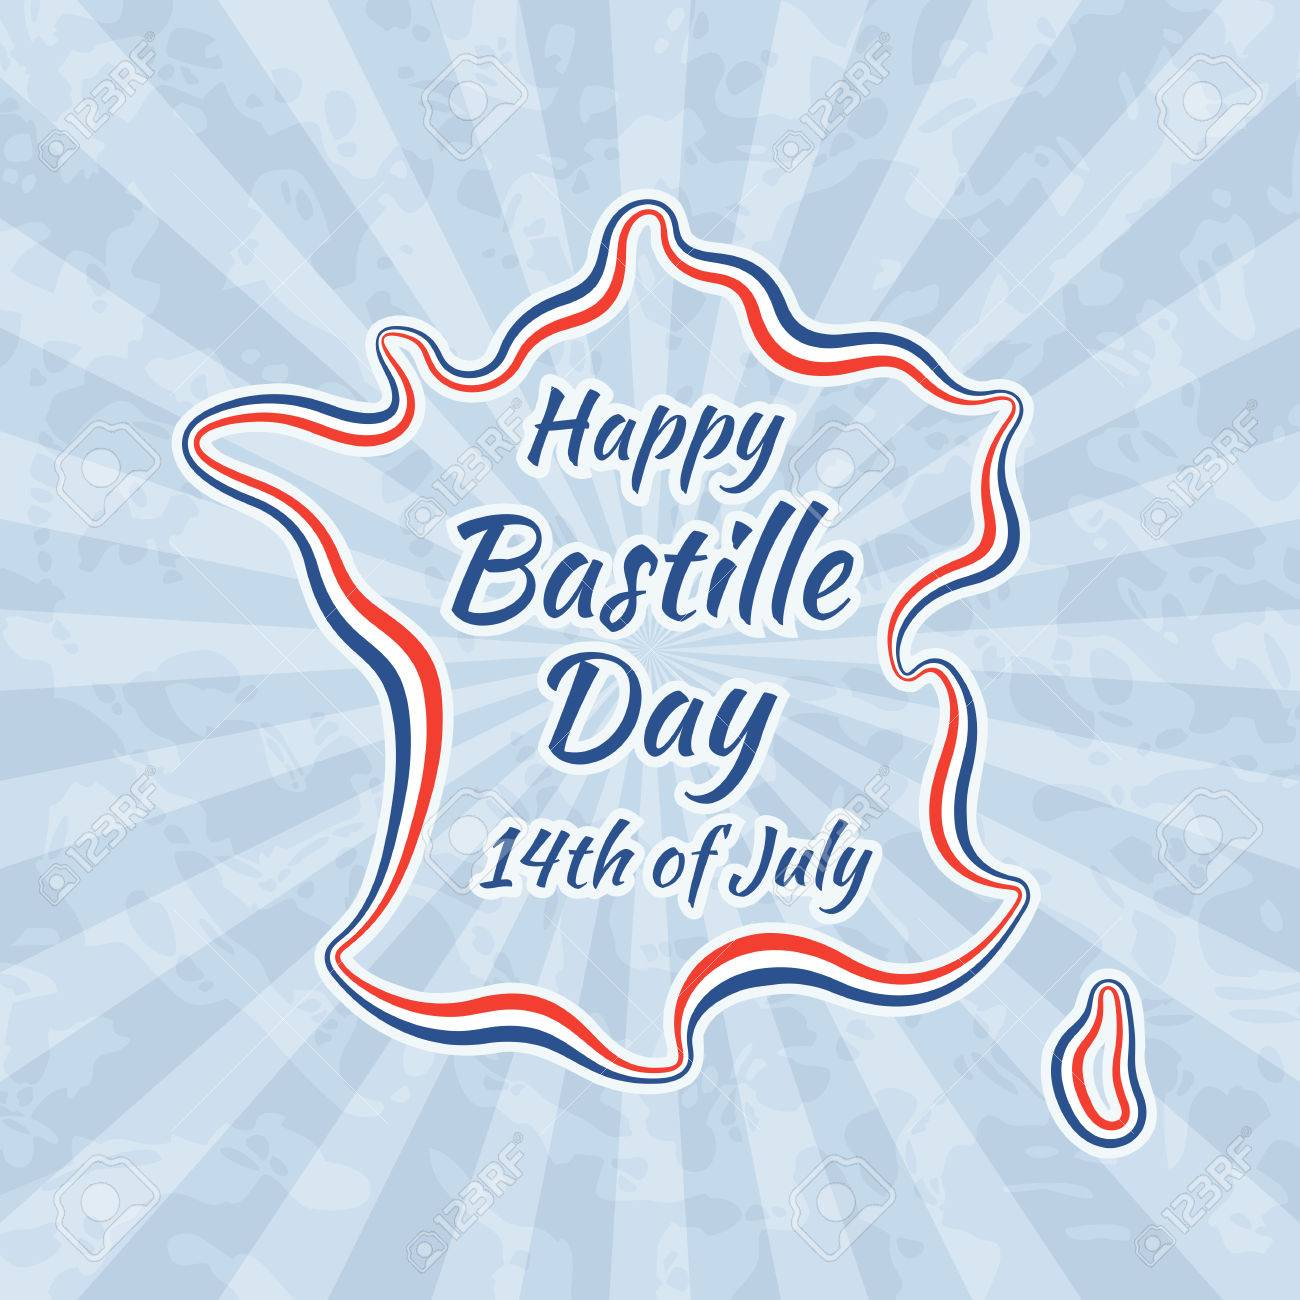 Happy bastille day and 14th july greeting card for french national happy bastille day and 14th july greeting card for french national day retro with m4hsunfo